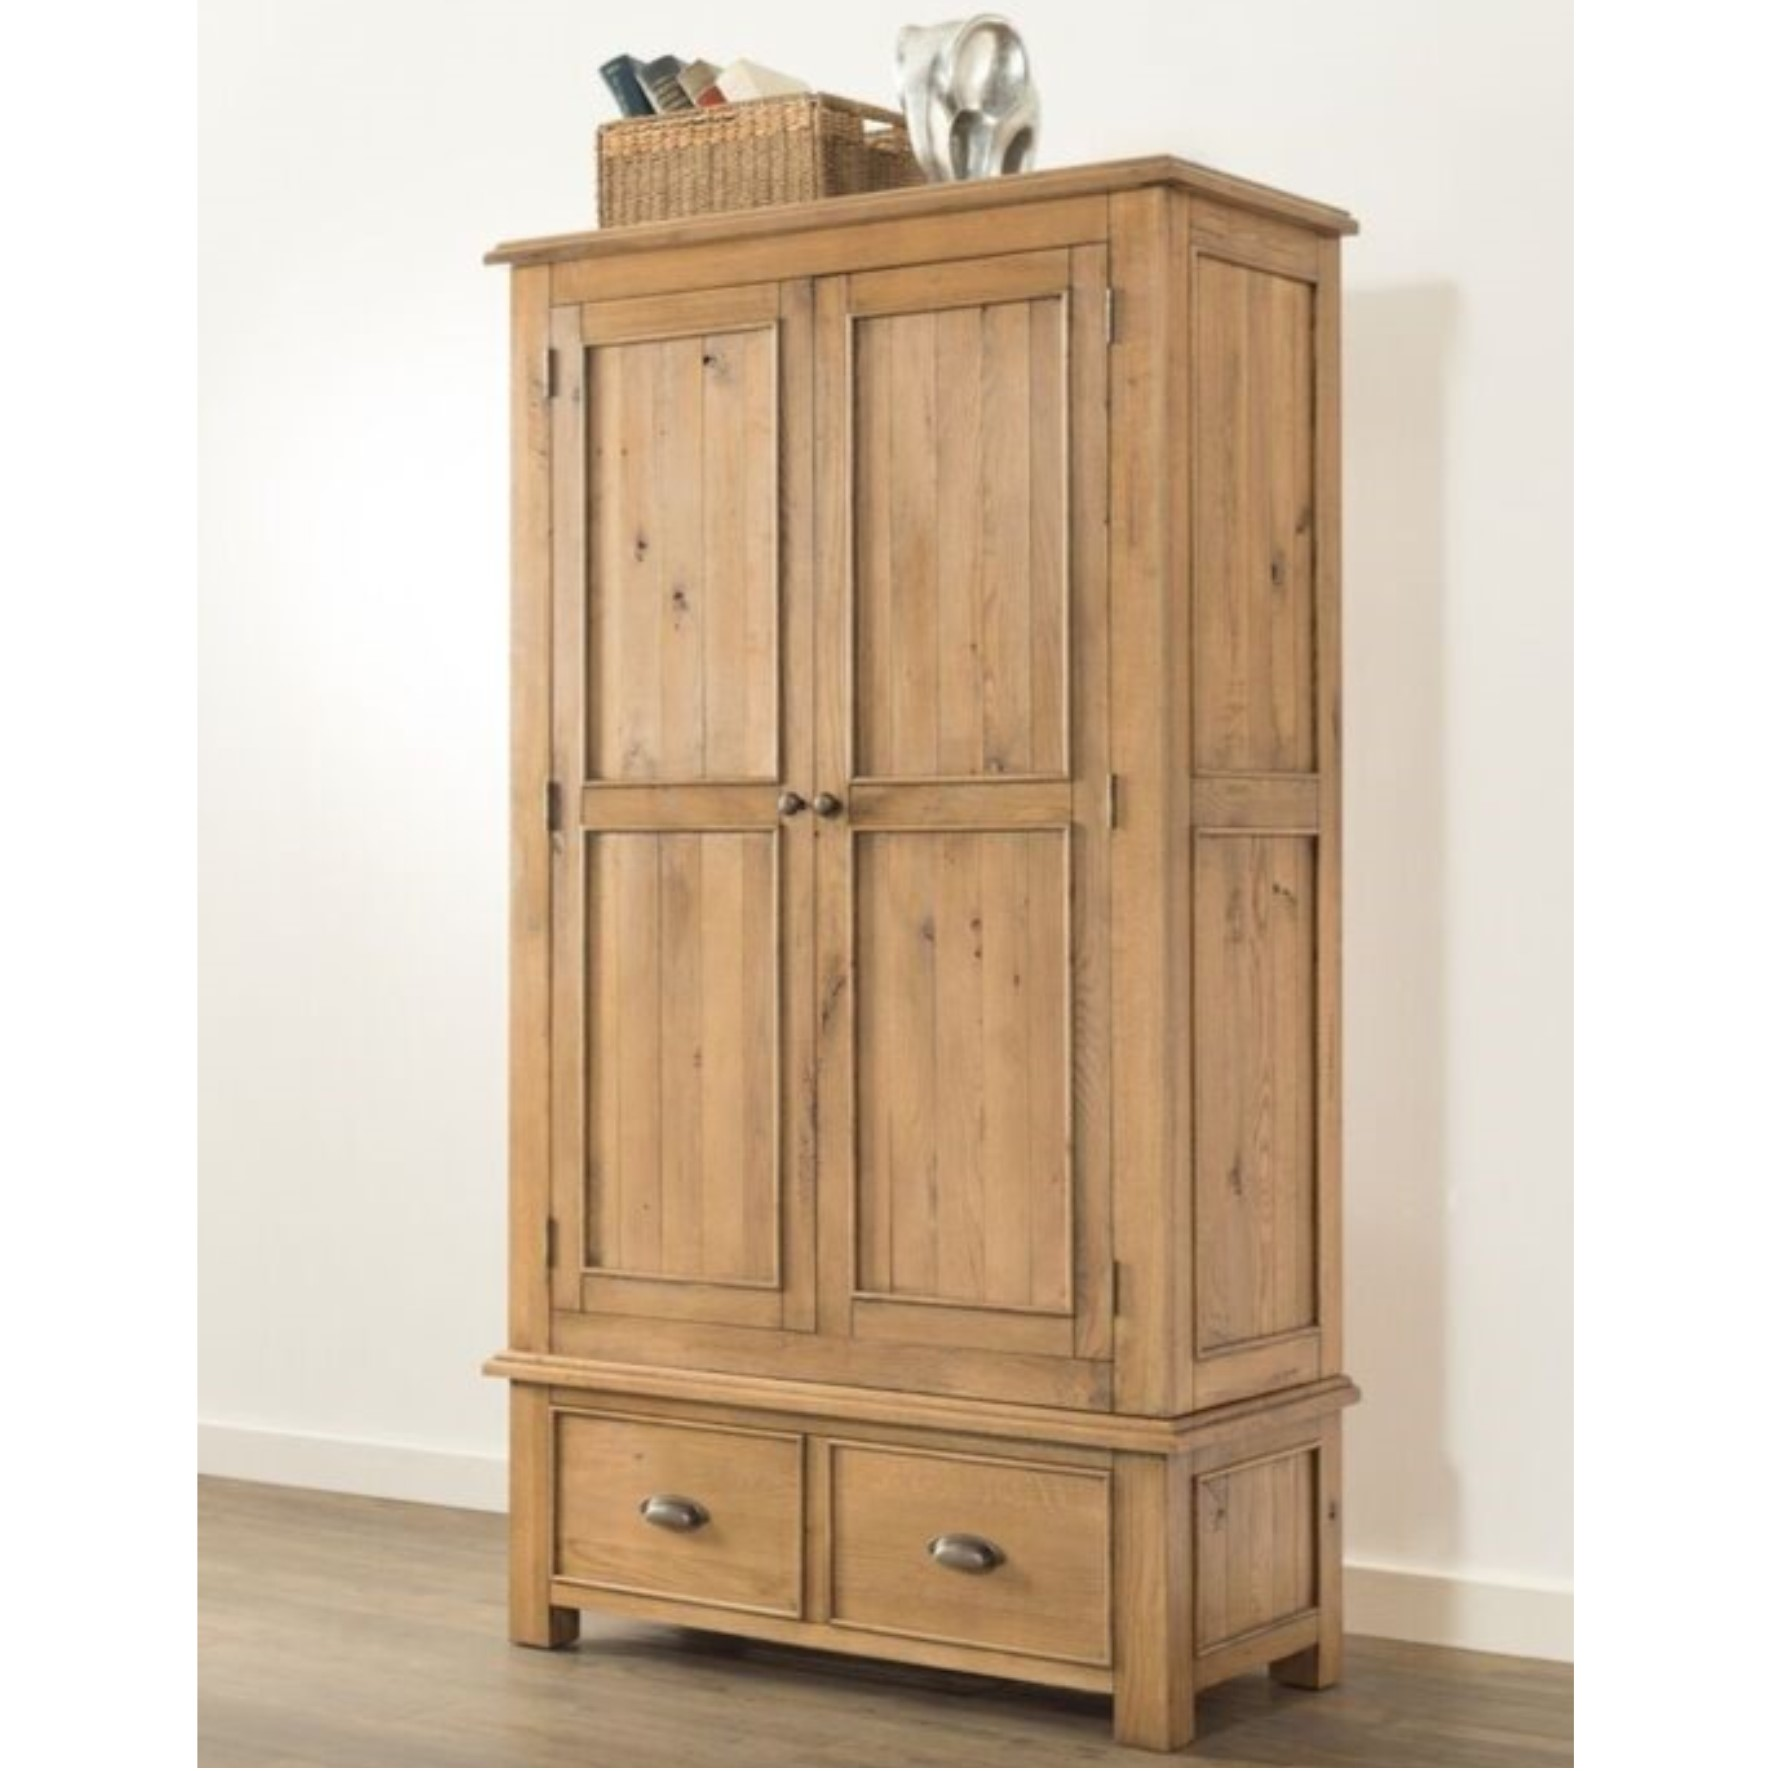 Harlow - Double Robe with Drawer